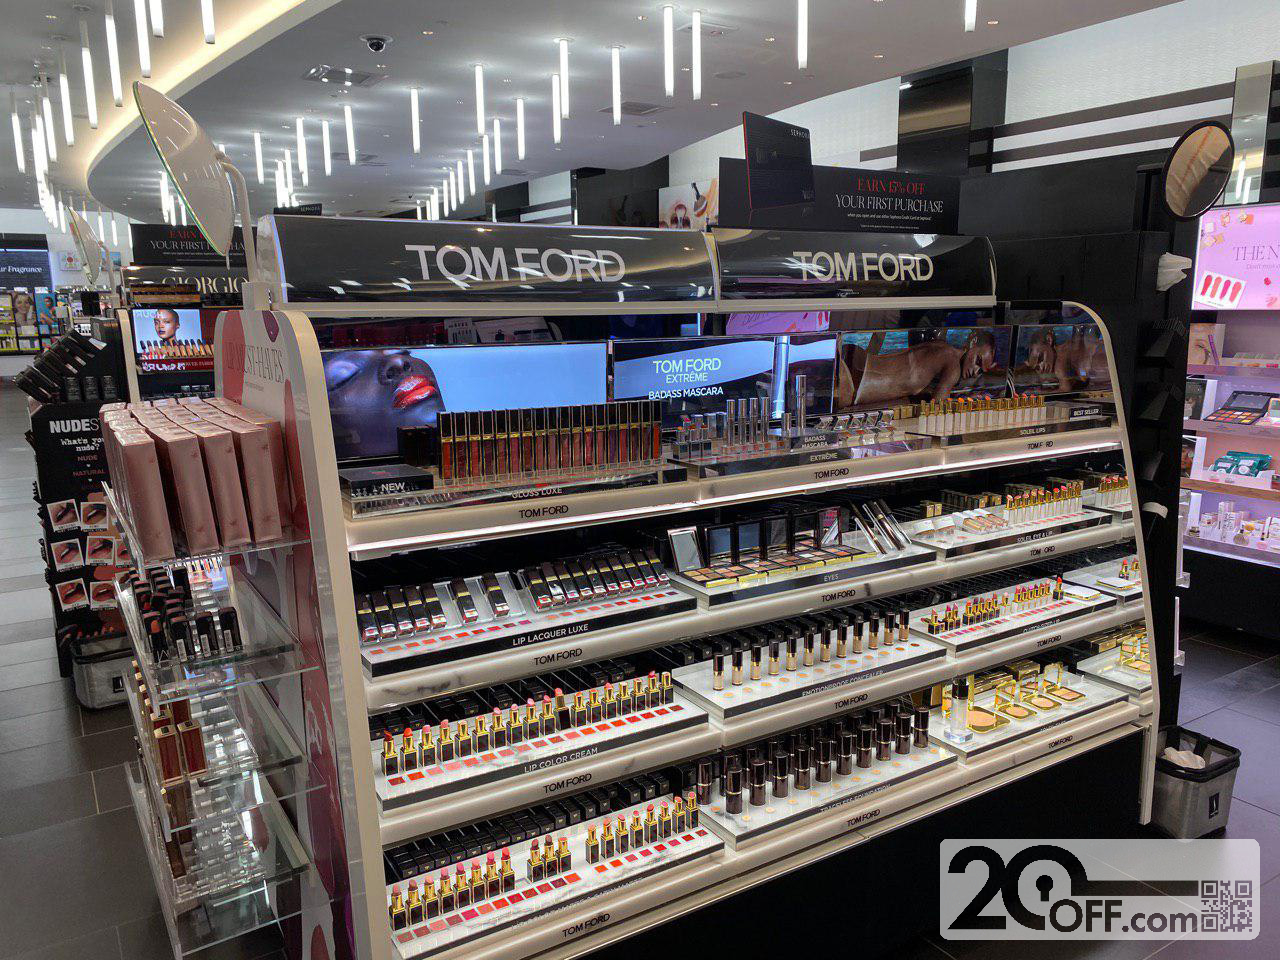 Sephora Tom Tord Coupon